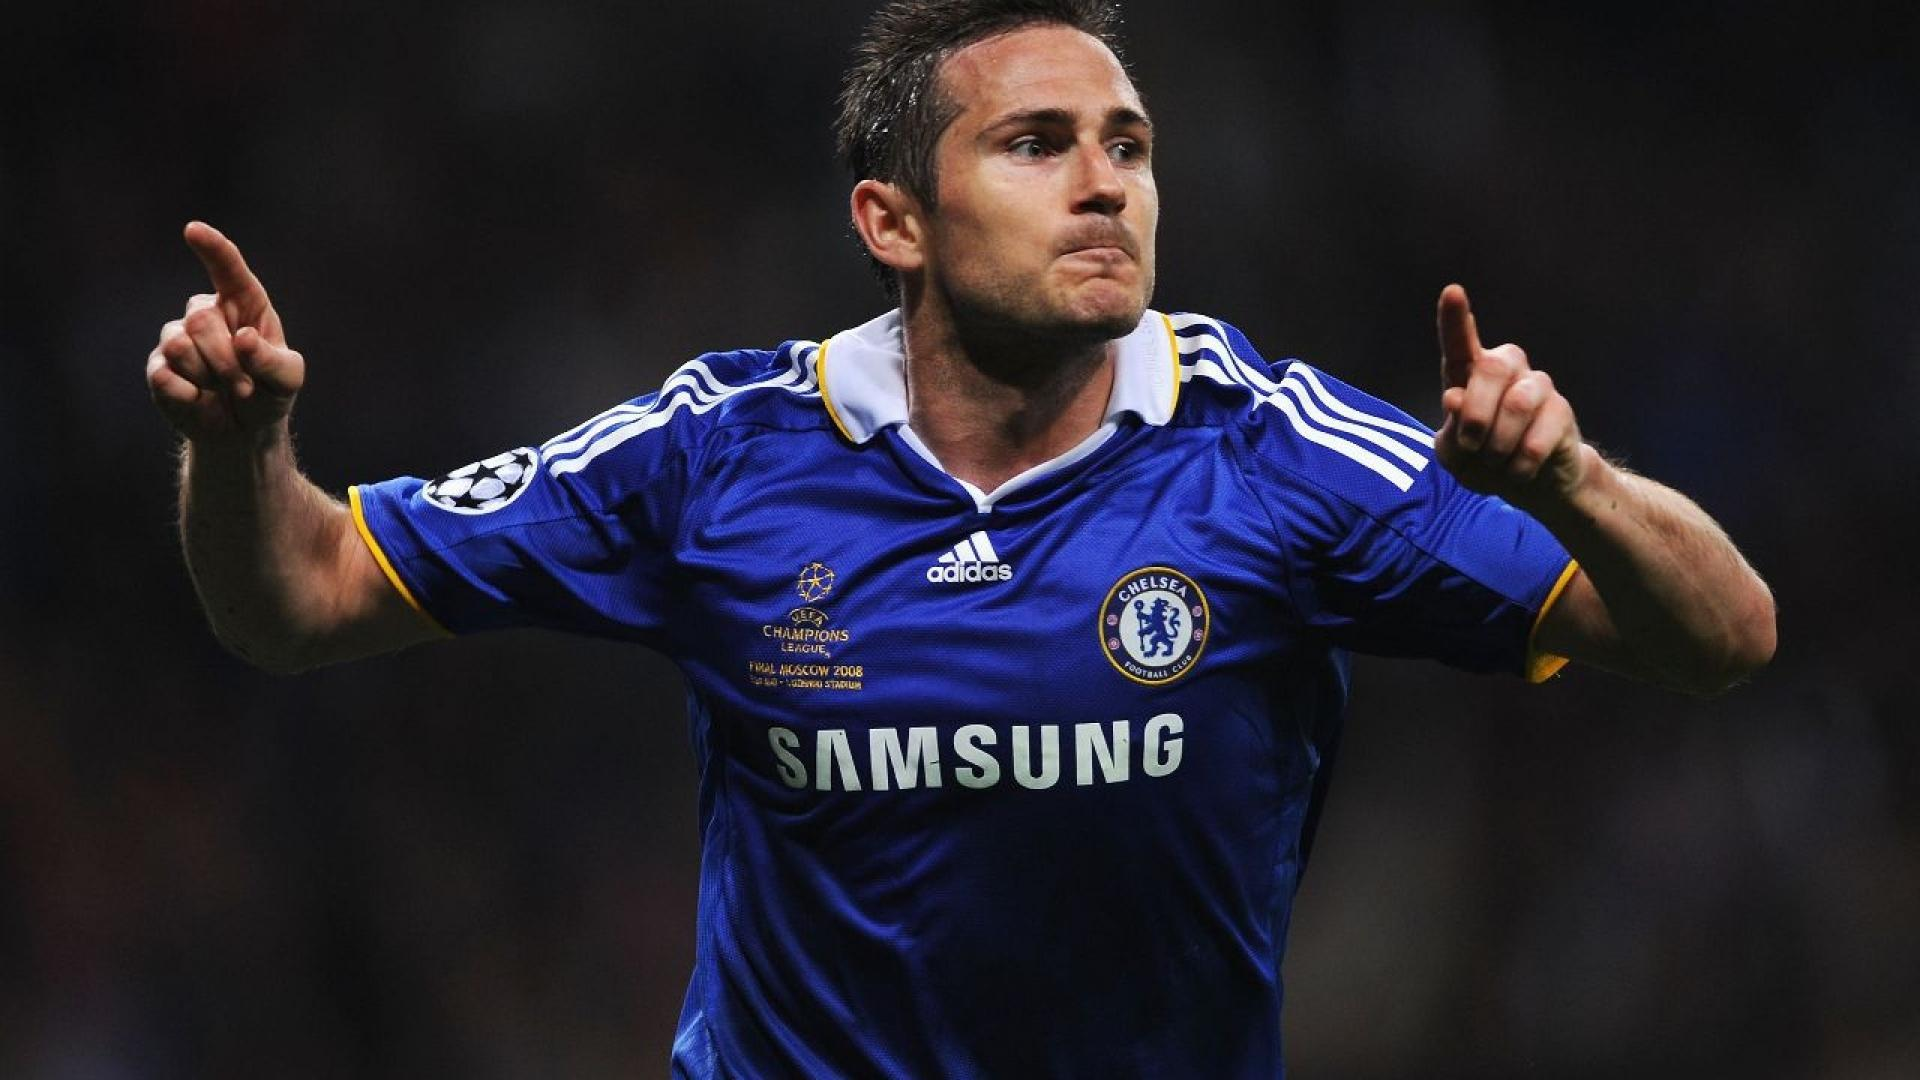 The Chelsea Legend returns to its club: Frank Lampard